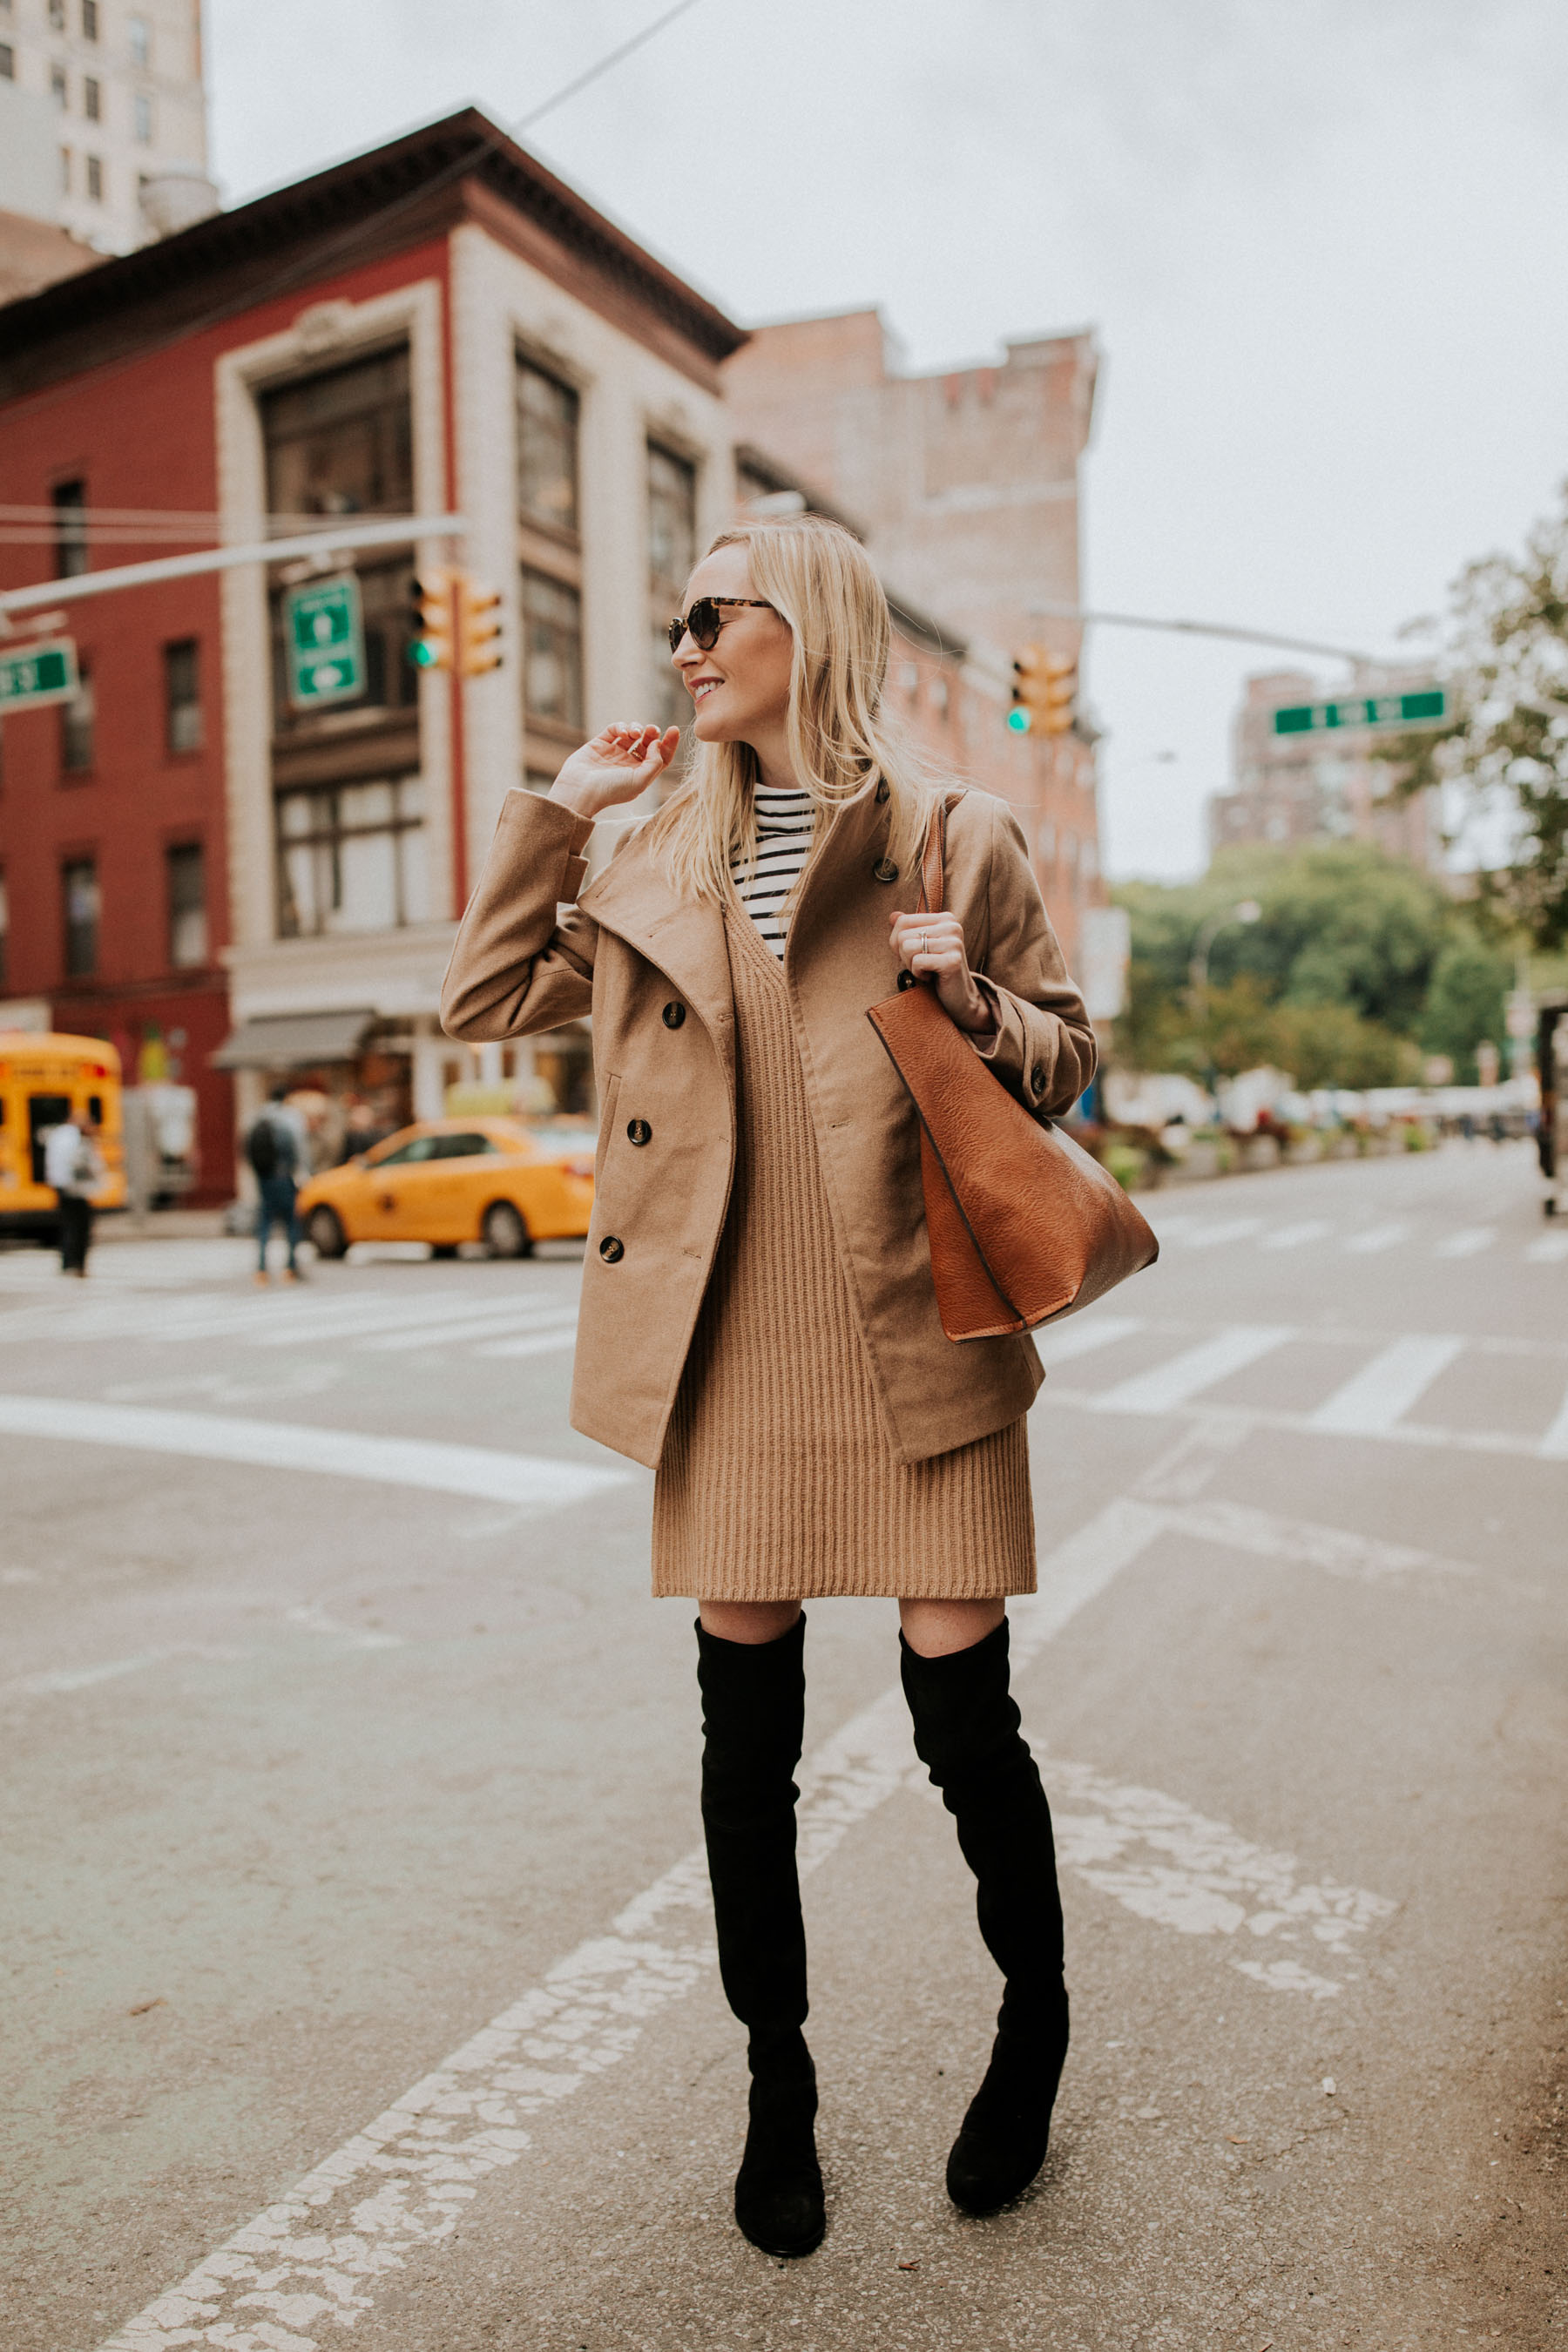 a33b86b34 $38 Peacoat (Have you seen the Kate Spade bow version?! This camel coat is  on my wish list, and this one's a classic.) / Over-the-Knee Boots ...